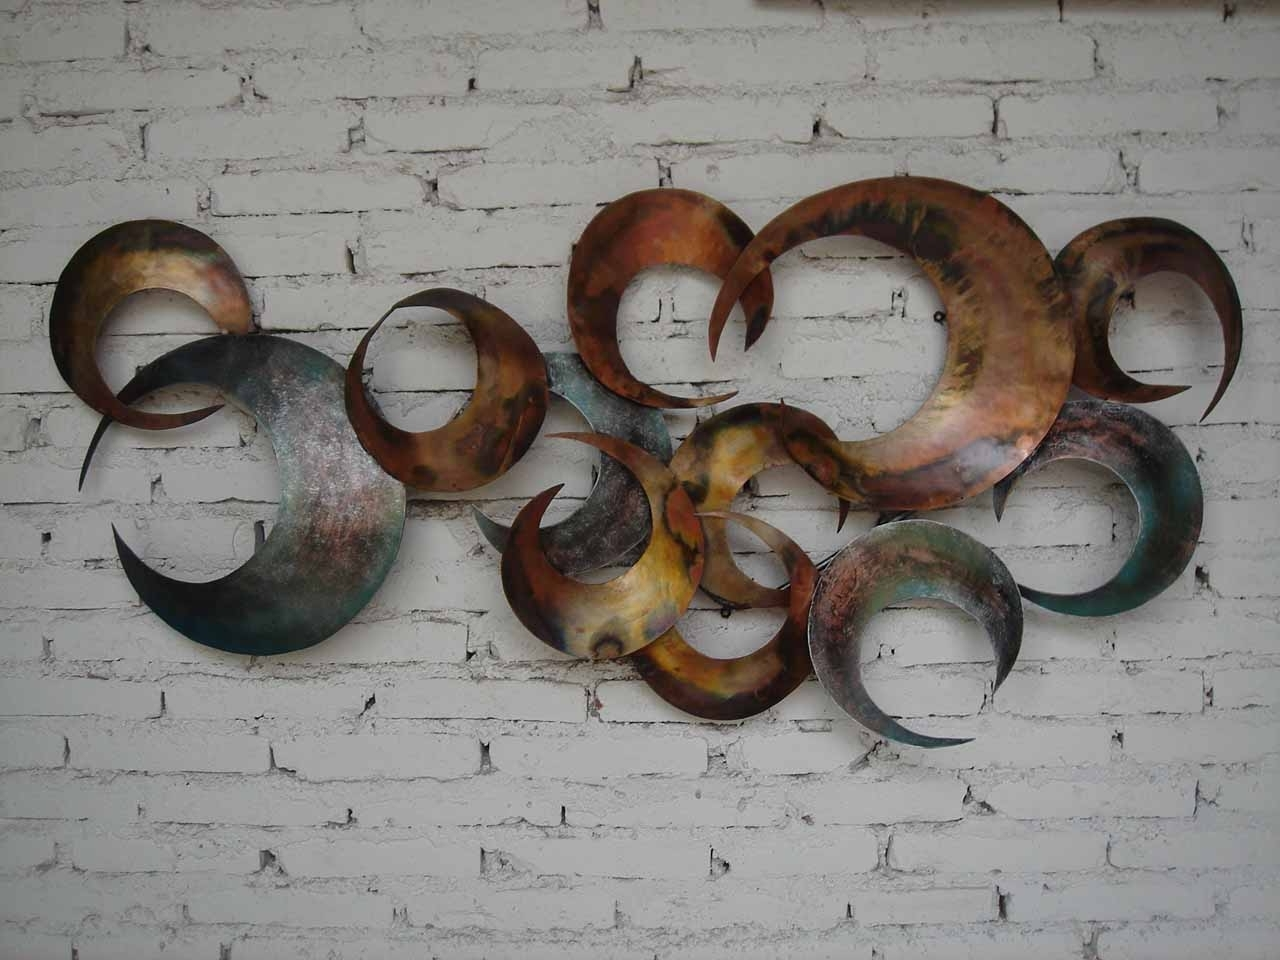 2017 Wall Art Sculpture Idea : Andrews Living Arts – Creative Ideas For Within Metal Wall Art Sculptures (View 2 of 15)